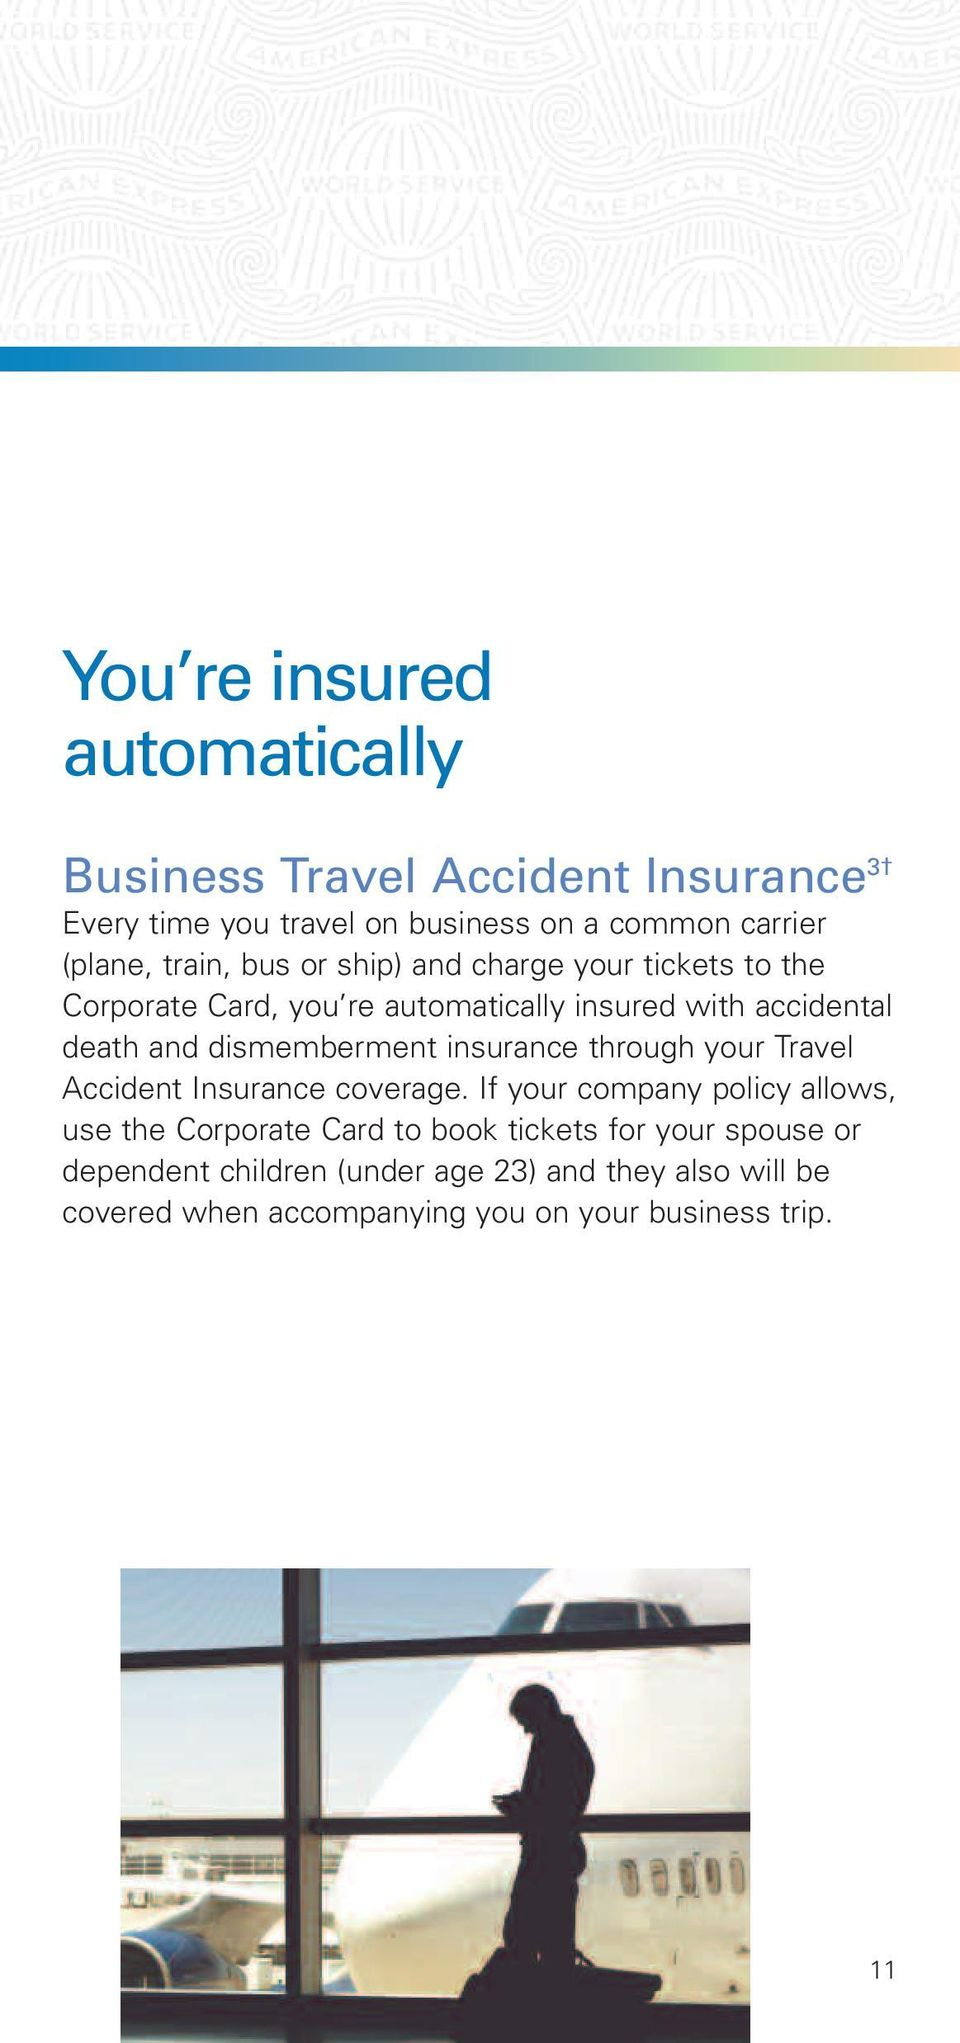 dismemberment insurance through your Travel Accident Insurance coverage.